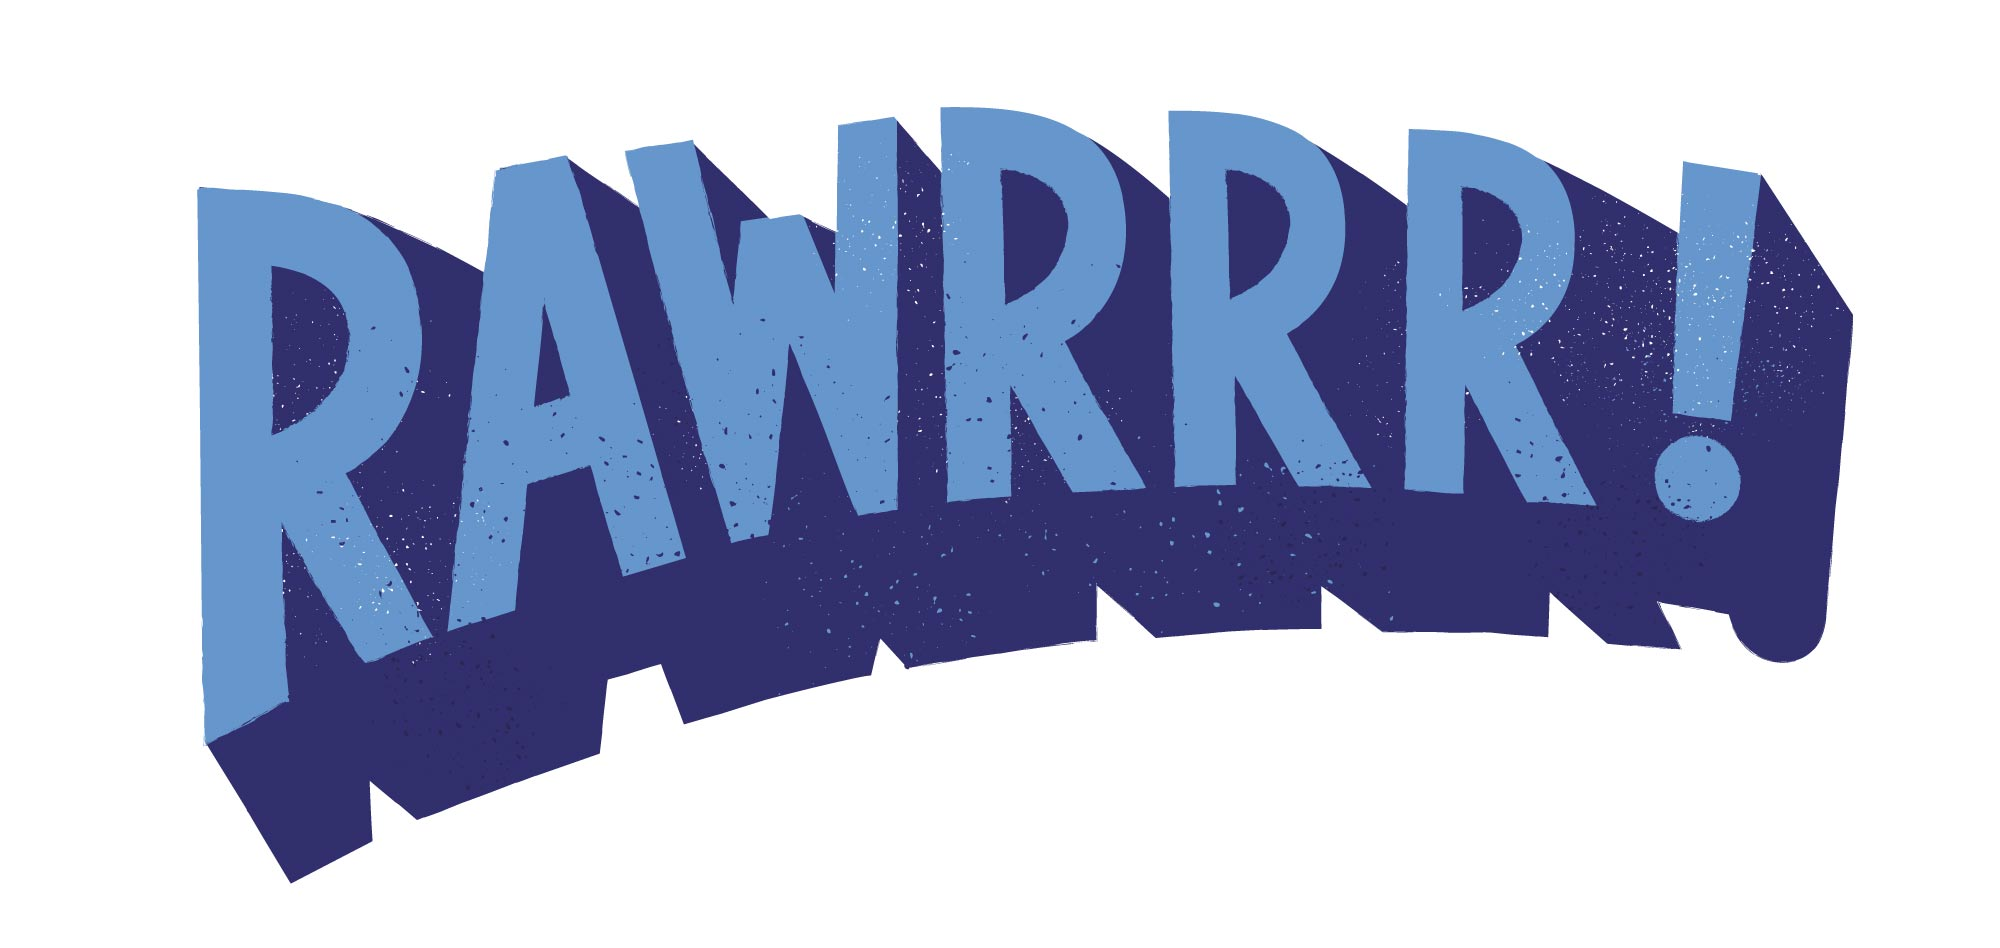 Rawrr hand drawn type by Elly Jahnz for Joules